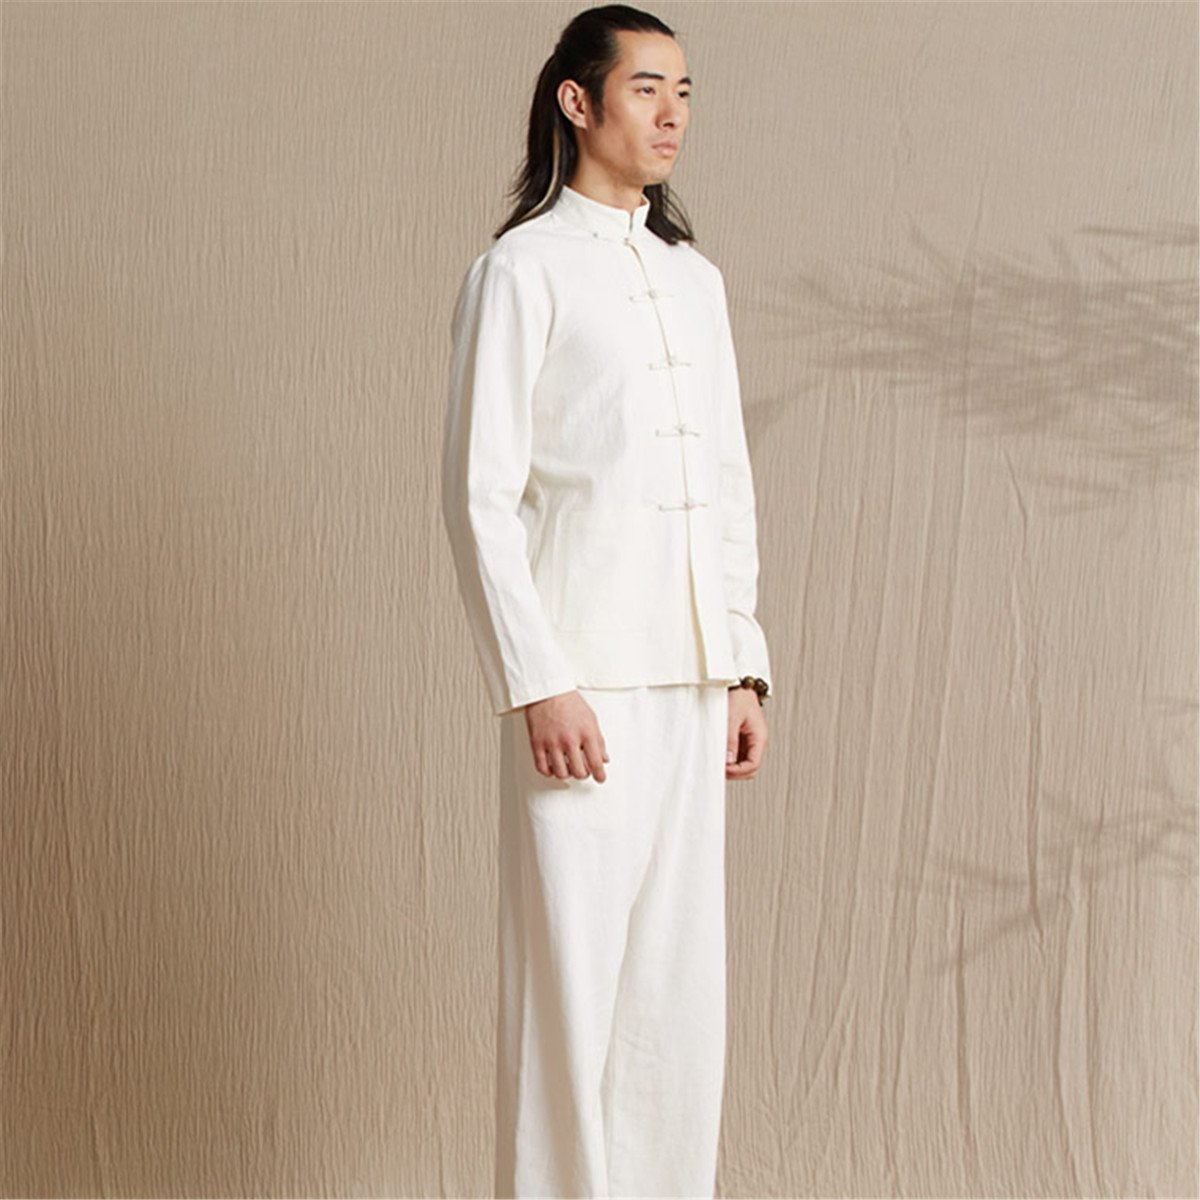 WEISAN Men Chinese Retro Stand Collar Tang Suit Cotton Linen Kung Fu Costume Jacket by WEISAN (Image #7)